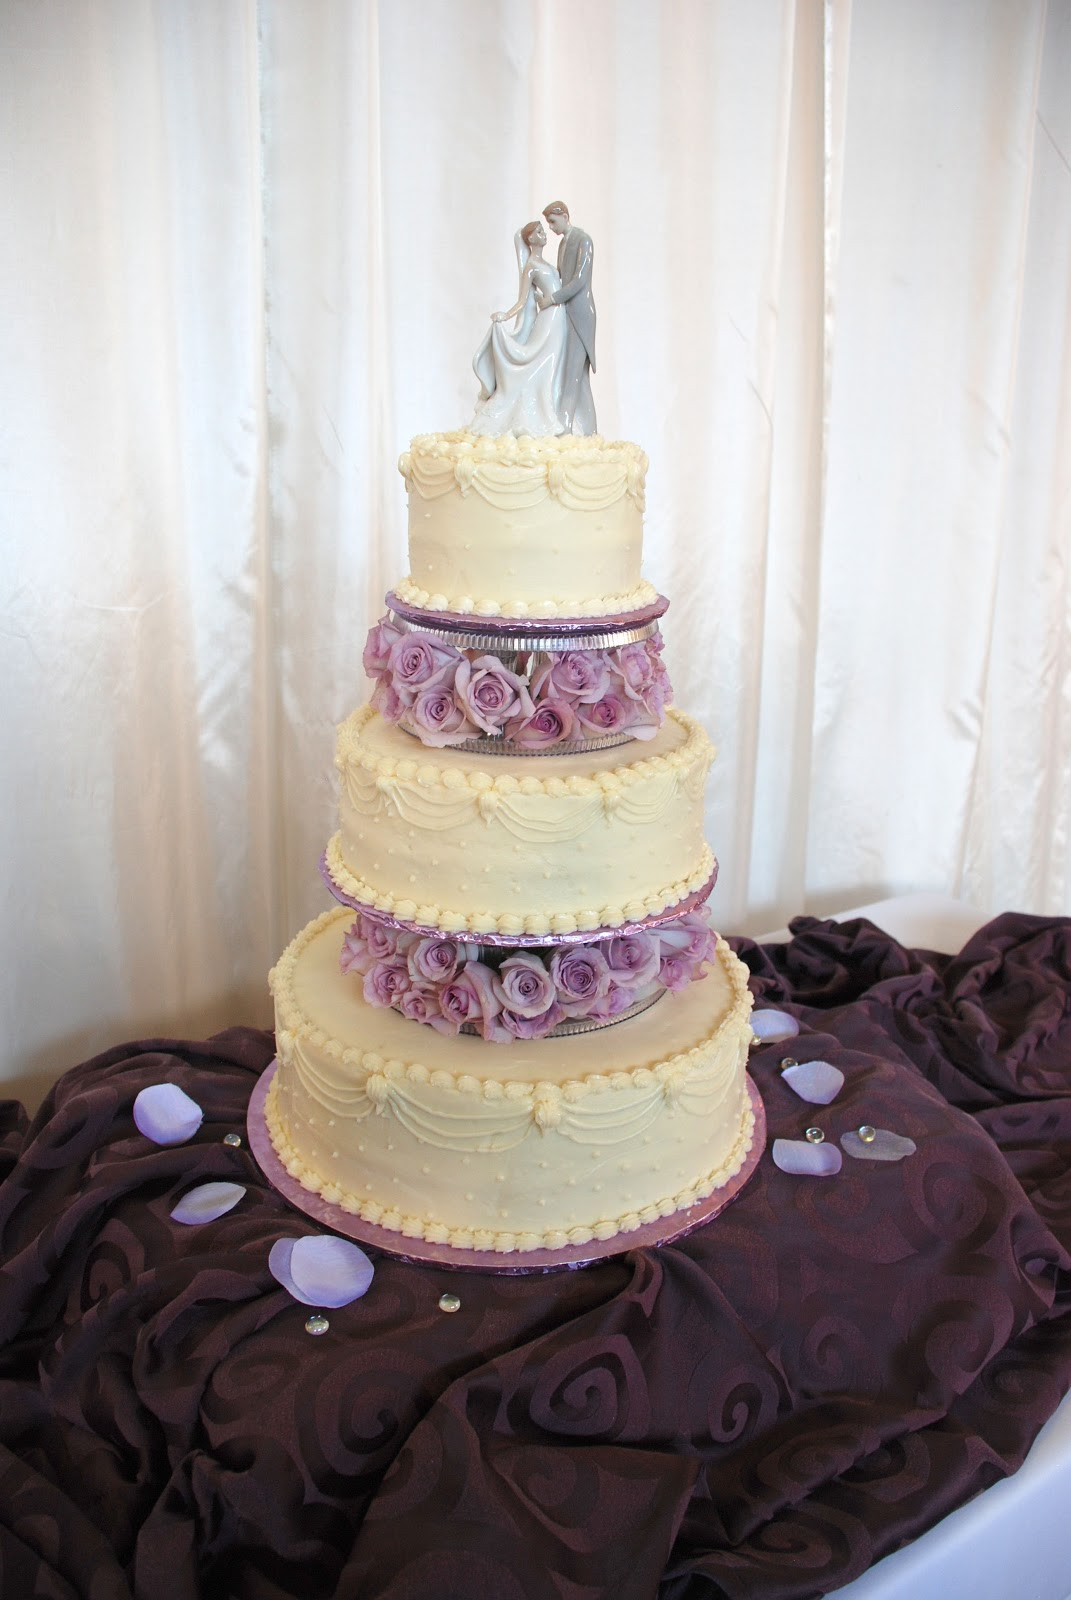 wedding cakes in rome ny national cake day 24766